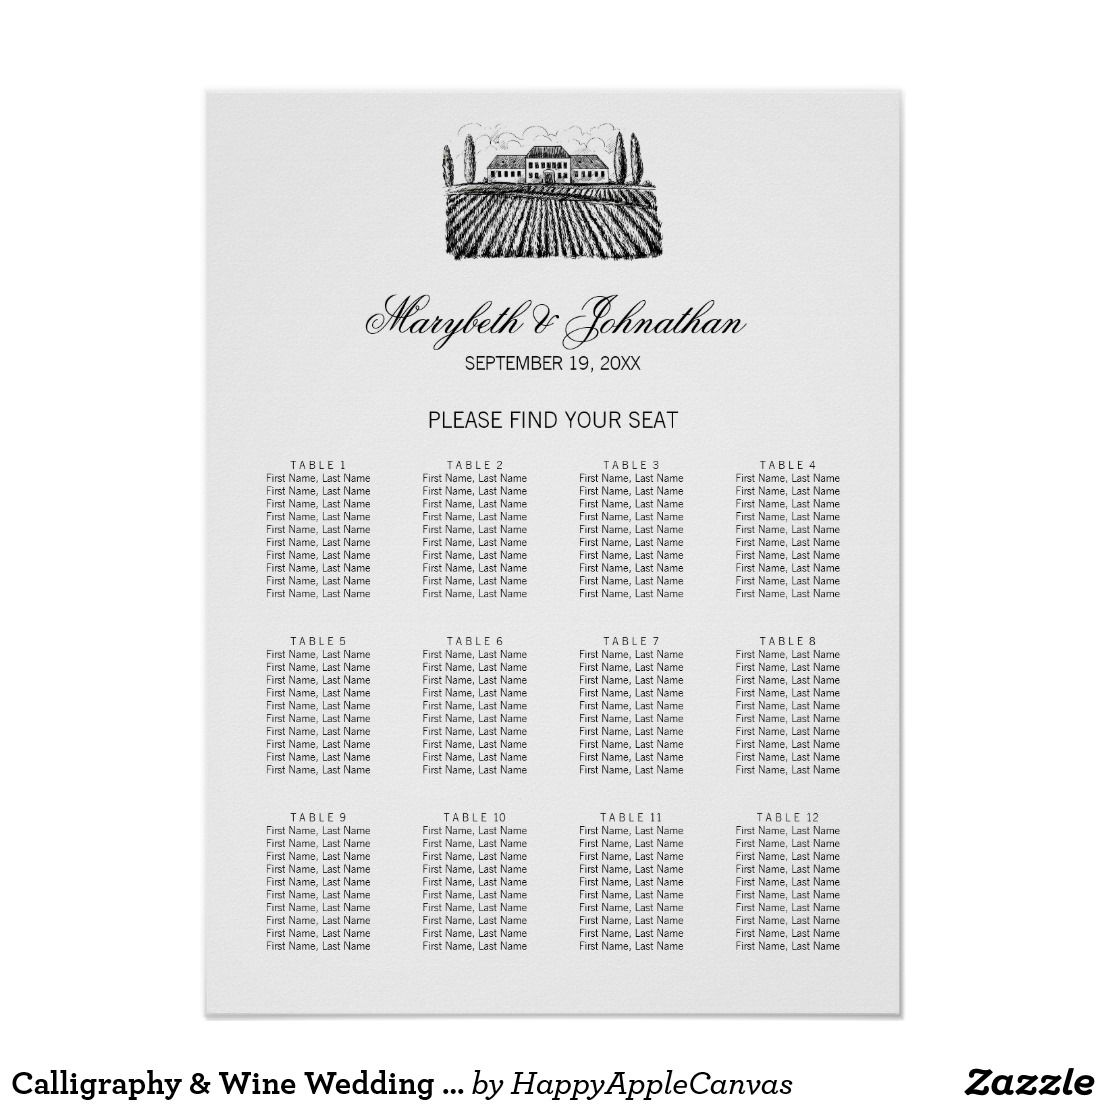 Calligraphy & Wine Wedding Seating Chart Poster